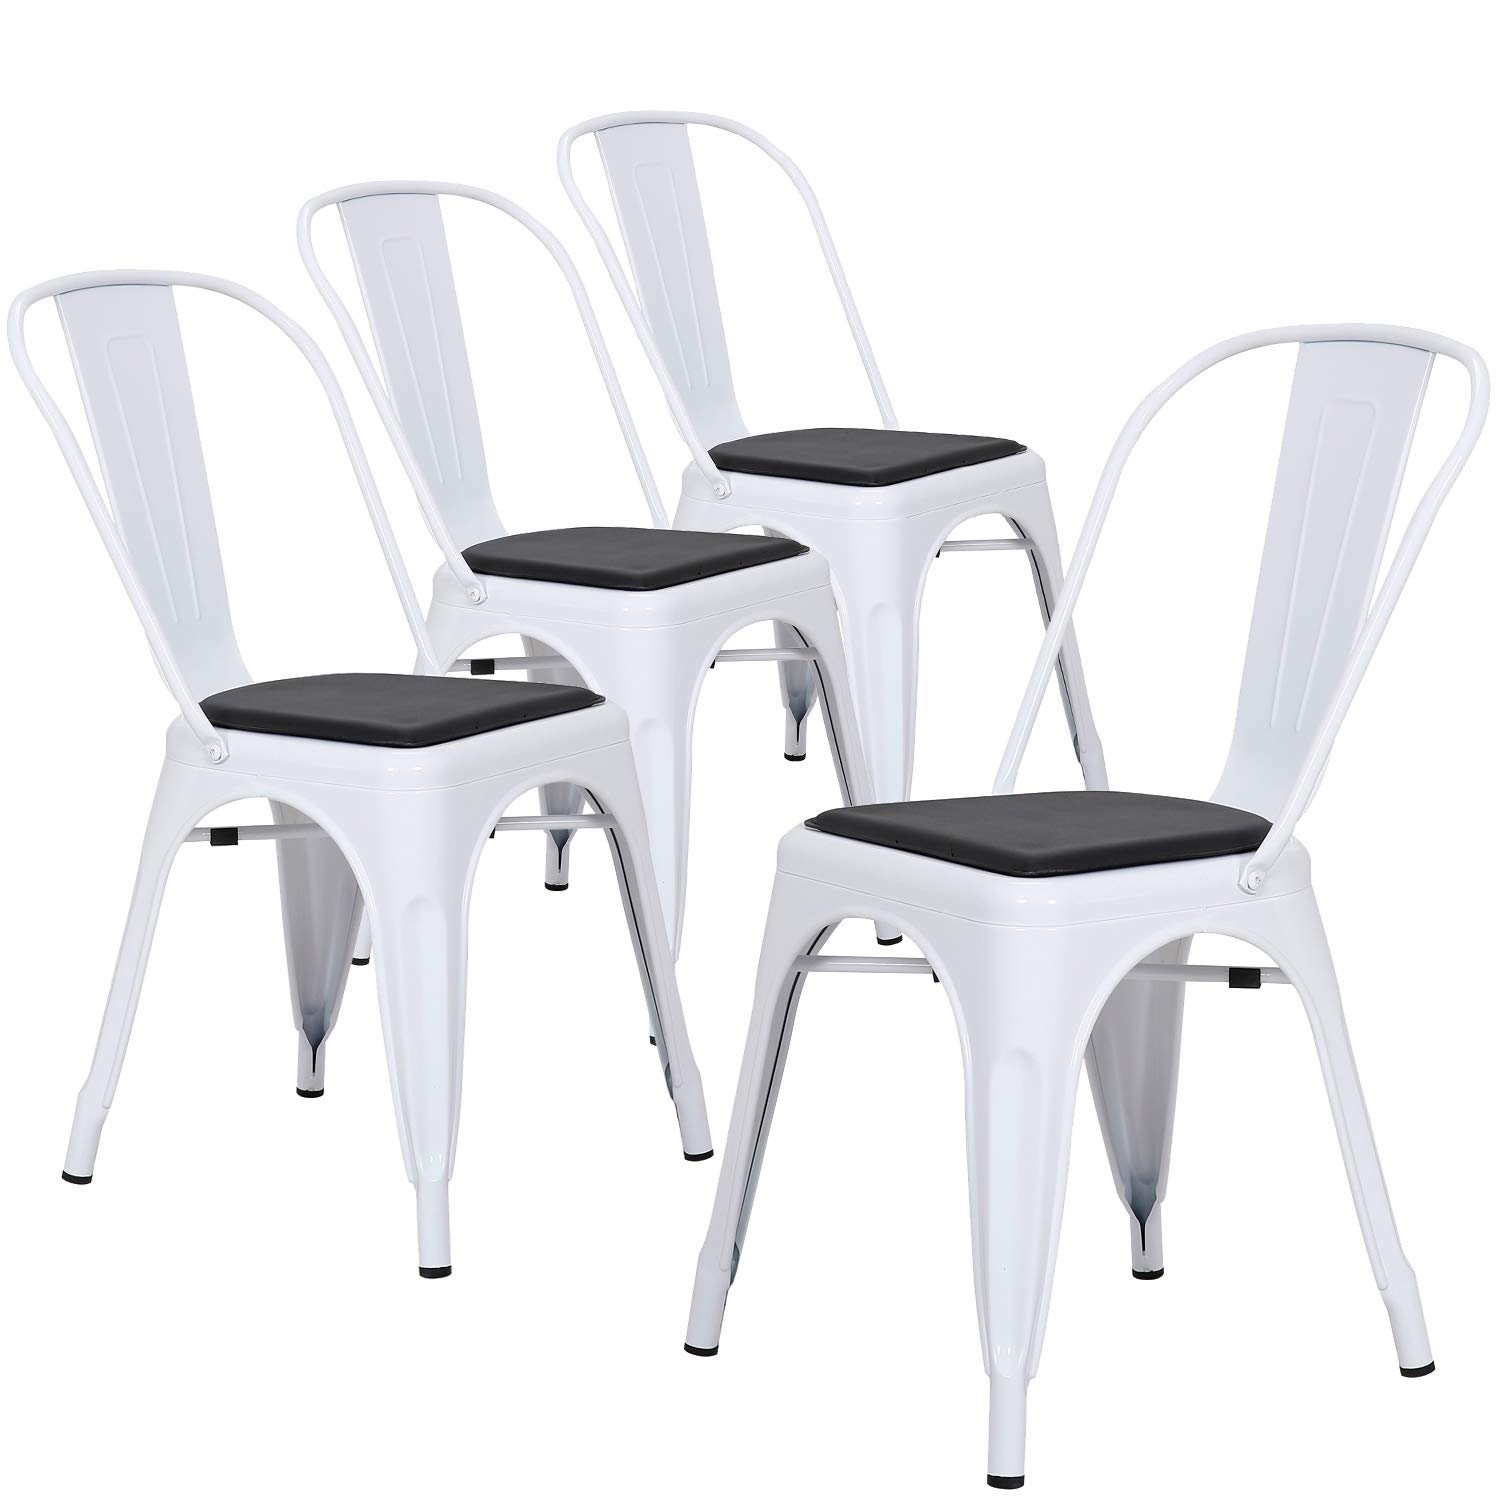 Amazoncom Lch Industrial Metal Dining Chairs Set Of 4 Modern